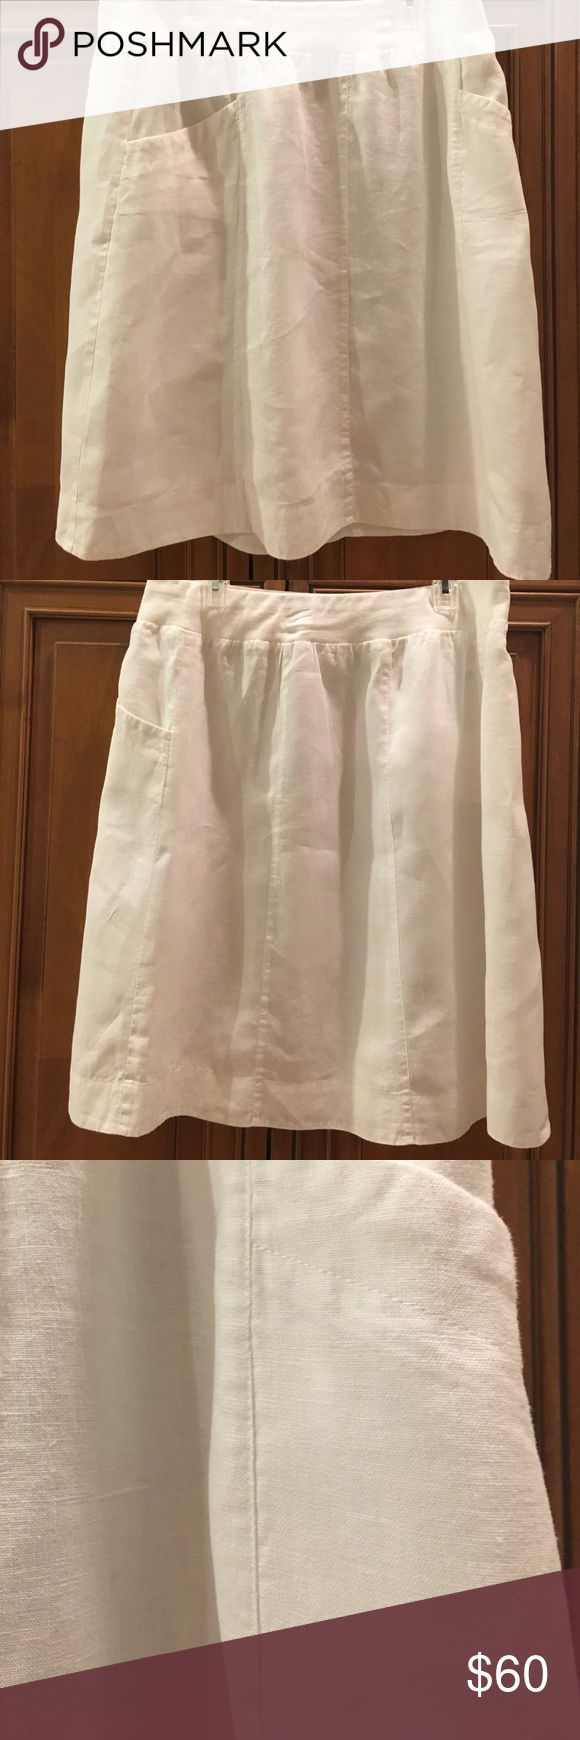 """Eileen Fisher Organic White Linen Knee lgth Skirt BEAUTIFUL NEAR Mint $248 Eileen Fisher 100% Organic White Linen Knee length Straight Skirt. Professionally dry-cleaned. Left tag on to show near new condition. Size Large Waist=36"""" ( unstretched) Hip=50"""" (unstretched) Waist to bottom of skirt: 23.5""""  Eileen Fisher 100% Organic Linen skirt with vertical seams for slimming look. Side POCKETS. Falls beautifully from hip to hem. Knee length. Pull-on waist. Waistband is 90% organic Cotton and 10%…"""